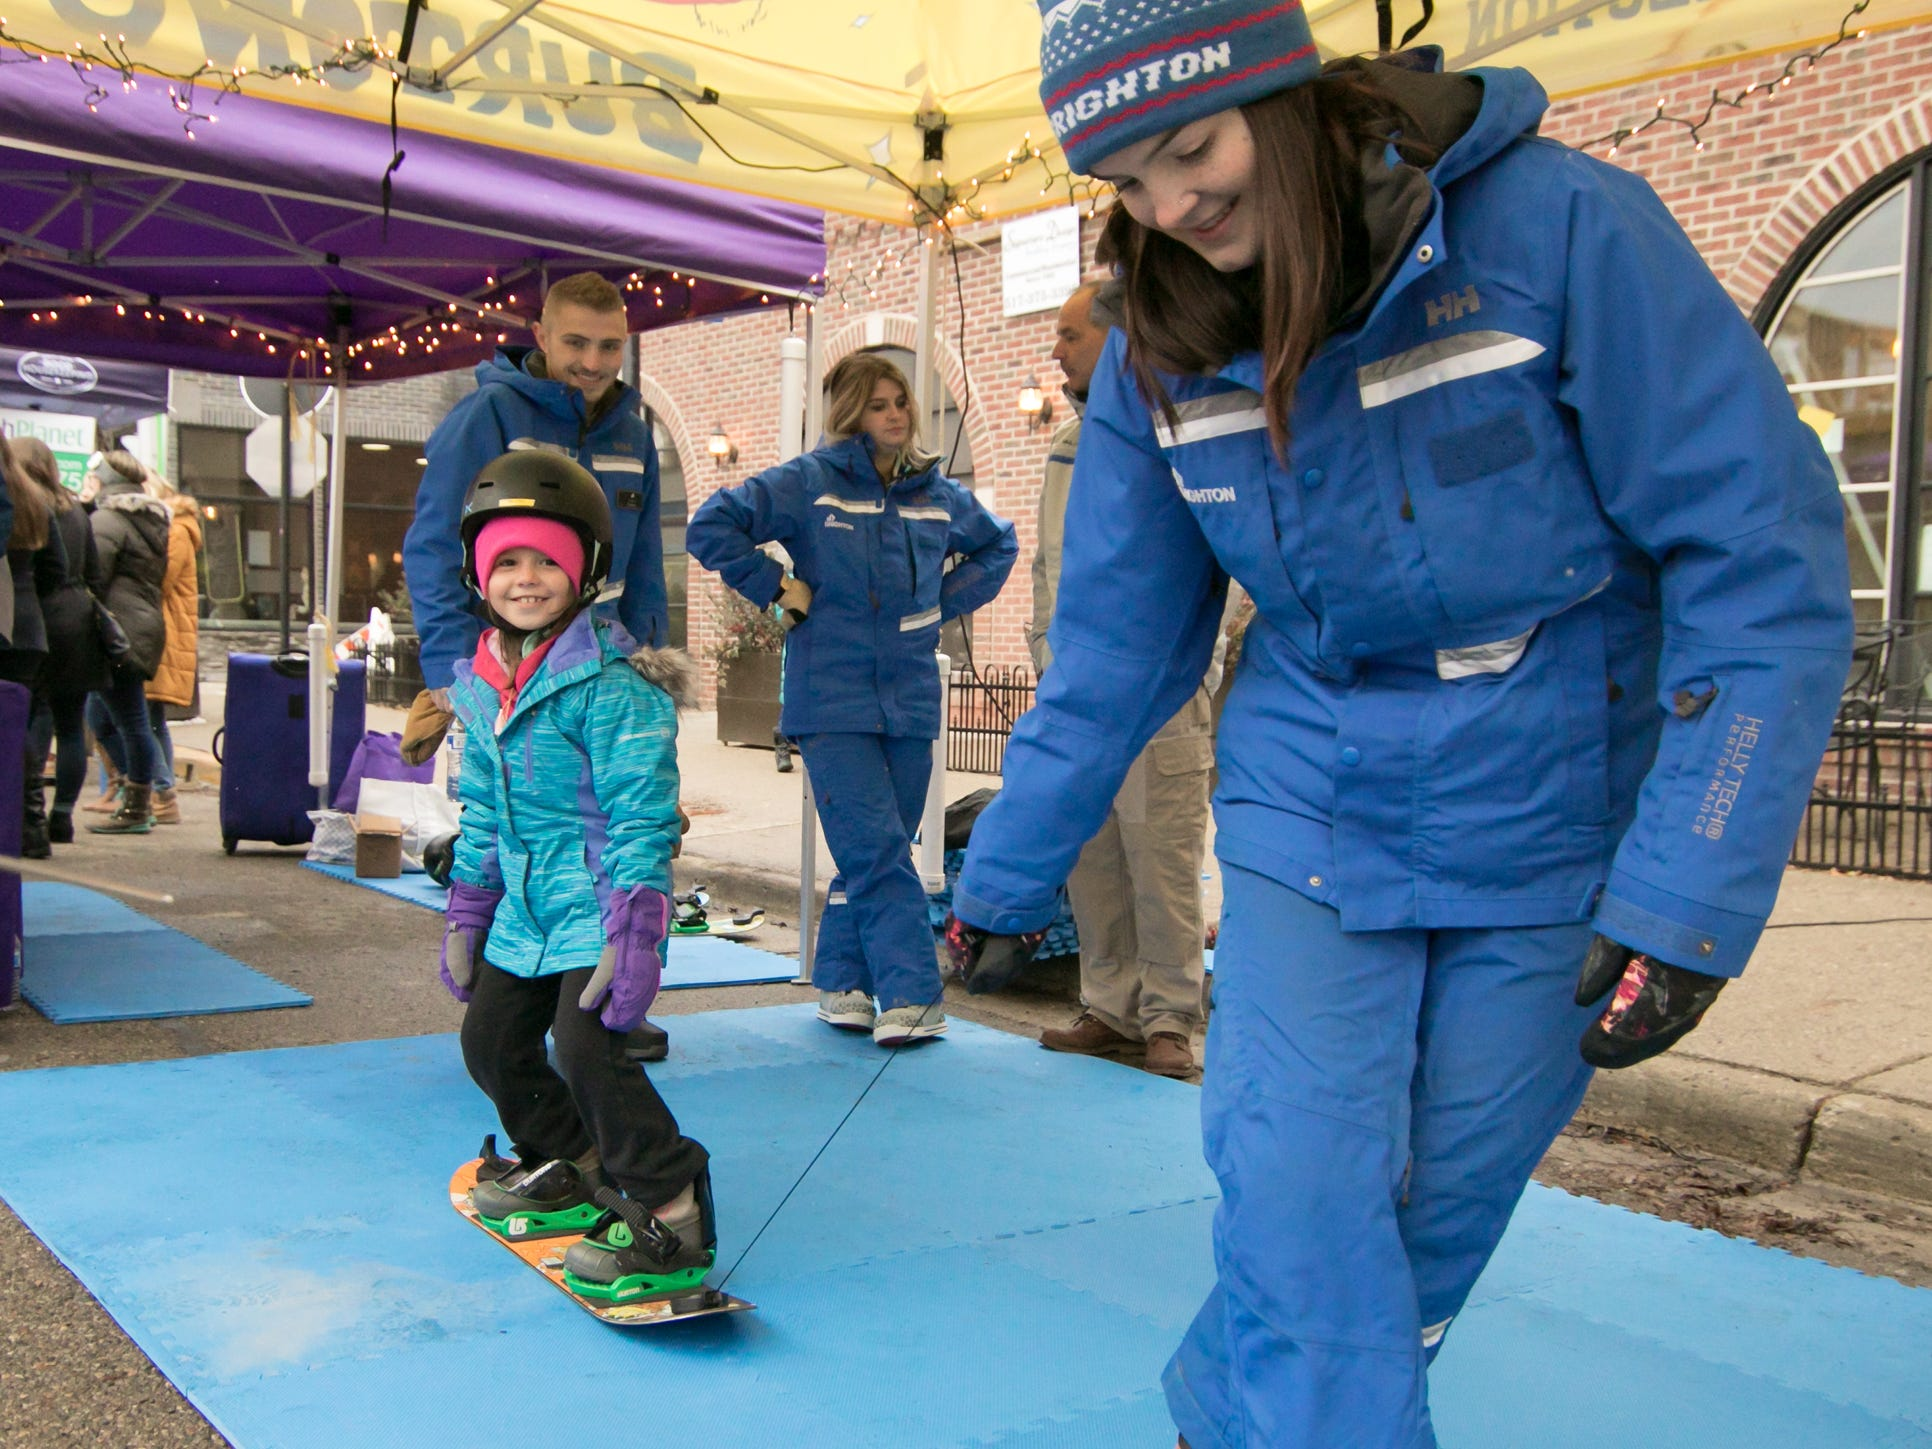 7-year-old Lauren Kirila gets a feel for snowboarding, pulled by Mt. Brighton ski instructor Erin McGill at the Holiday Glow Saturday, Nov. 17, 2018.